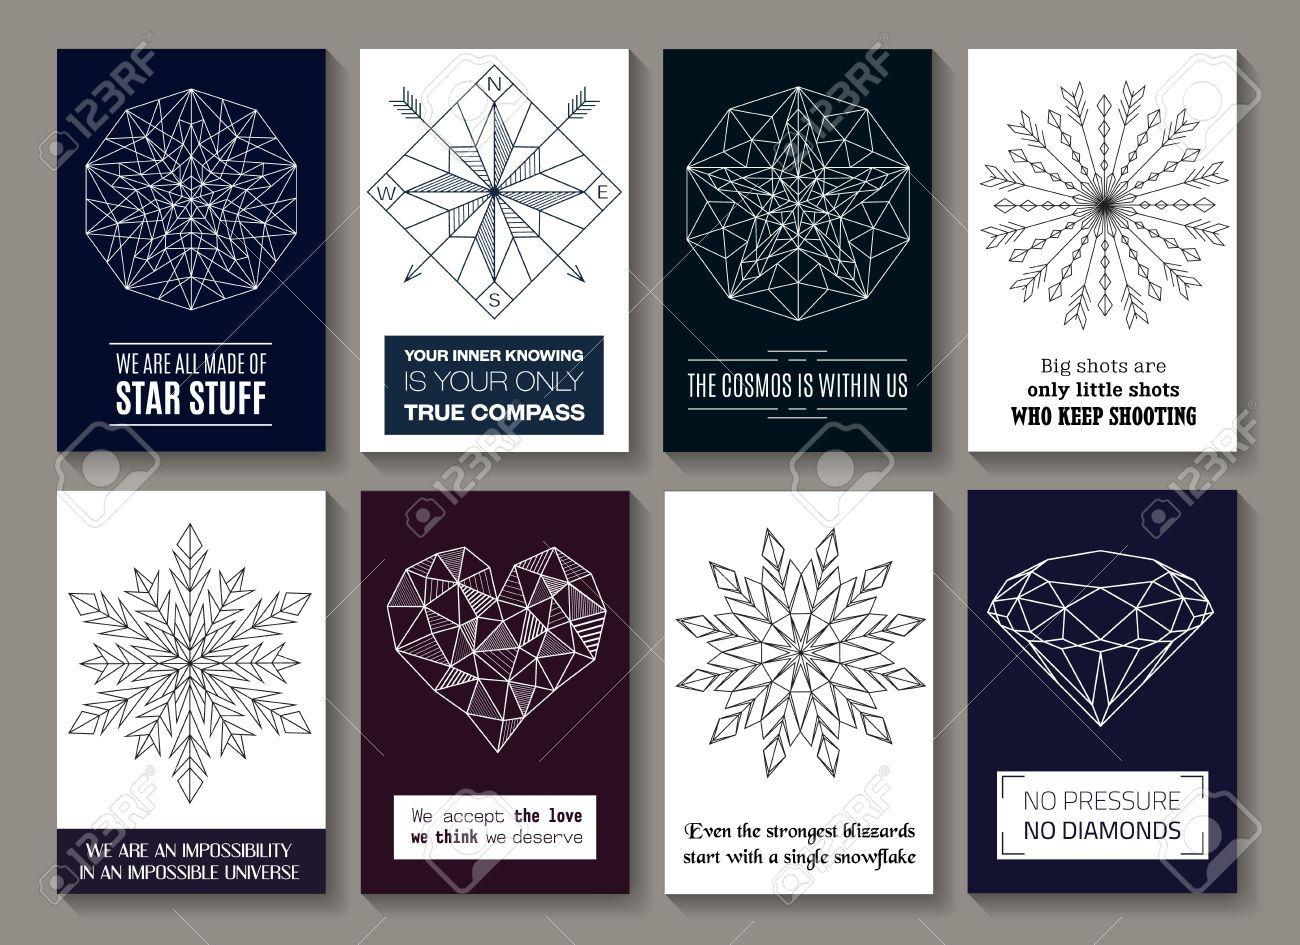 Vector Motivational Quotes On Cards With Images Of Star, Compass, Round  Ornament With Arrows